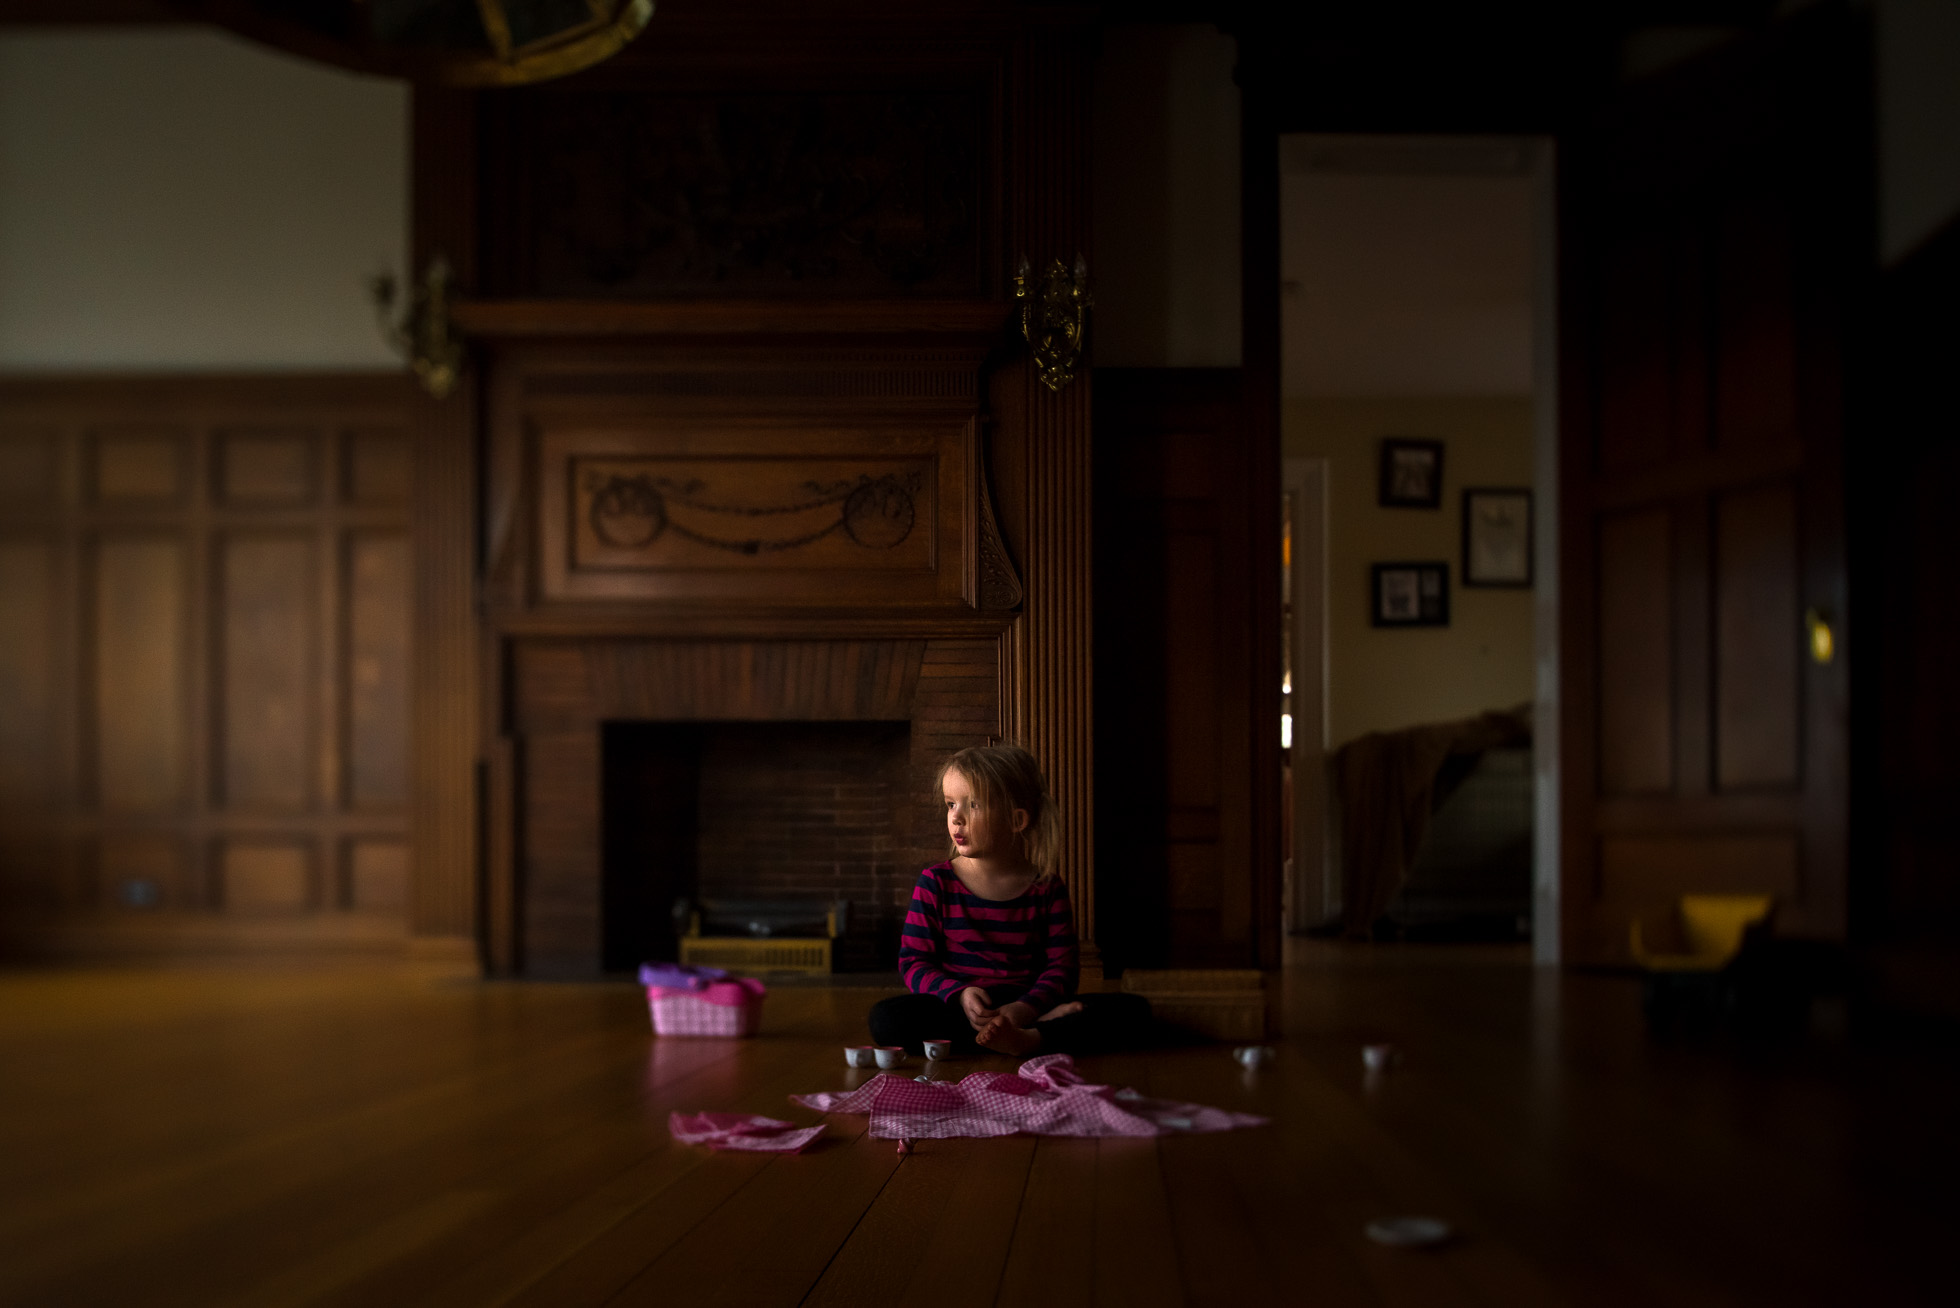 tilt-shift-everyday-environmental-portrait-of-little-girl-having-tea-party-picnic-in-beautiful-old-fashioned-wood-paneled-room-with-pretty-light-and-pink-colors-by-sarah-wilkerson